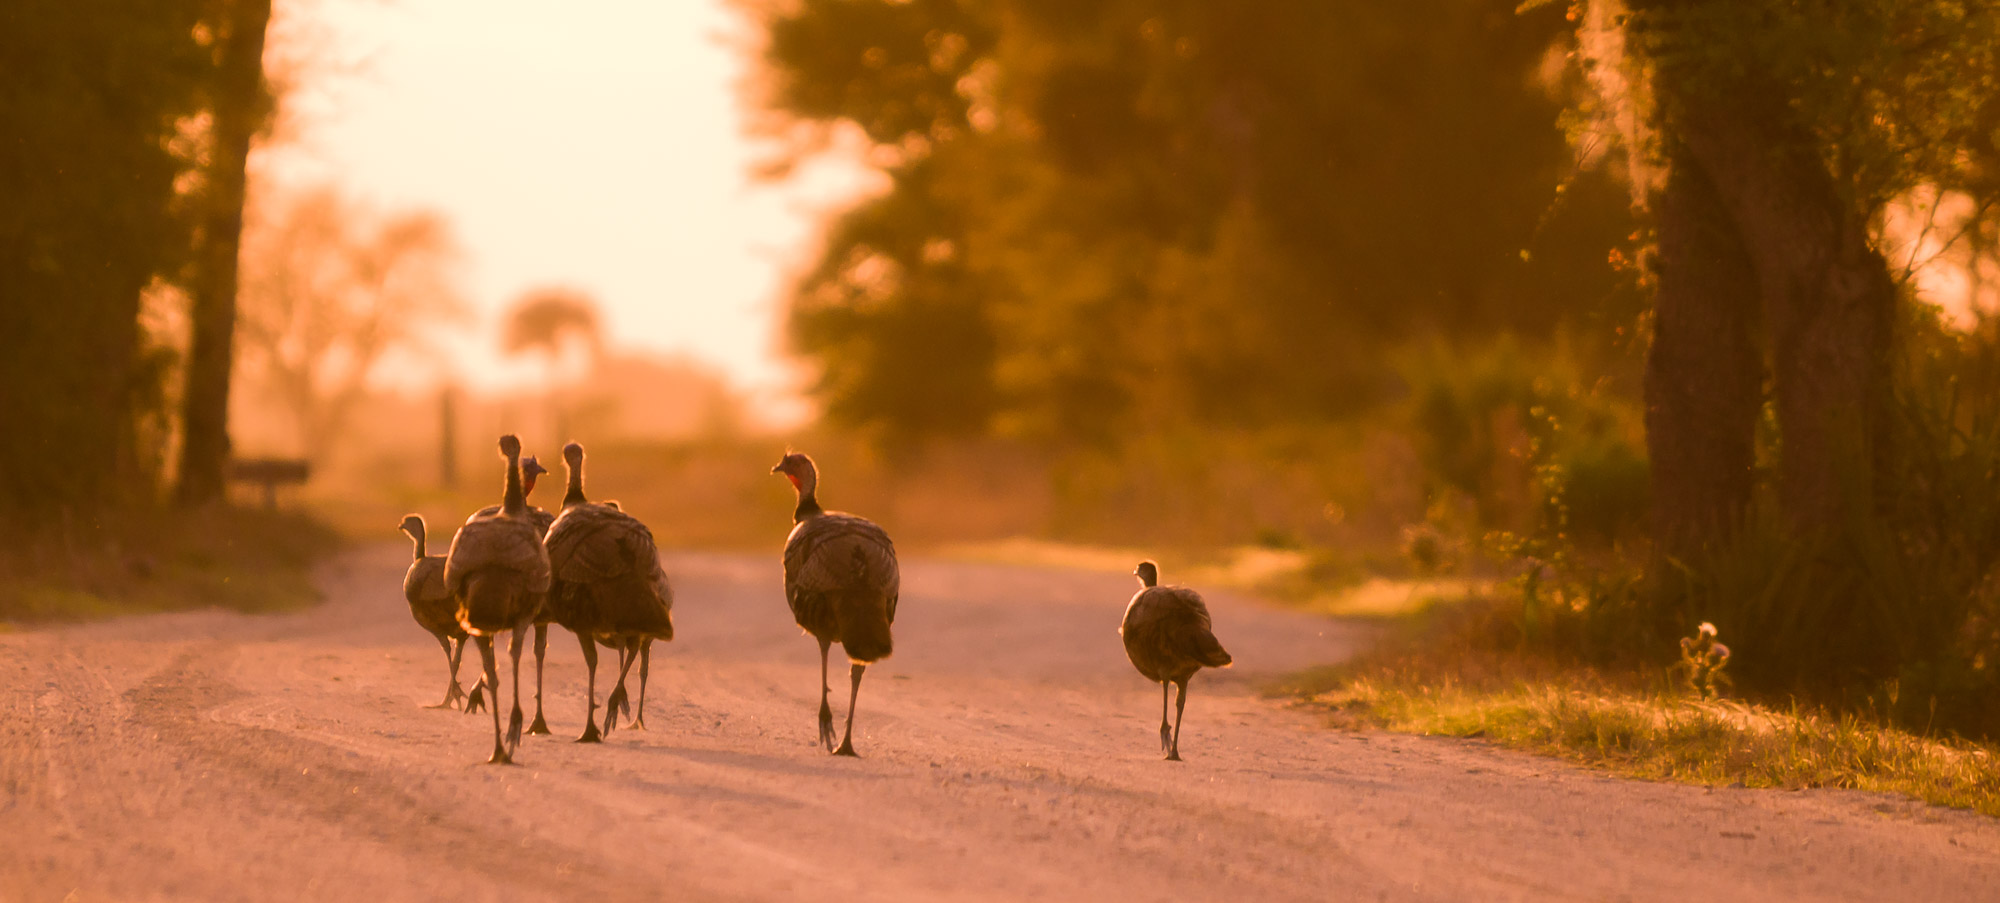 Wild Turkeys on road - Kissimmee Prairie Preserve State Park, Florida